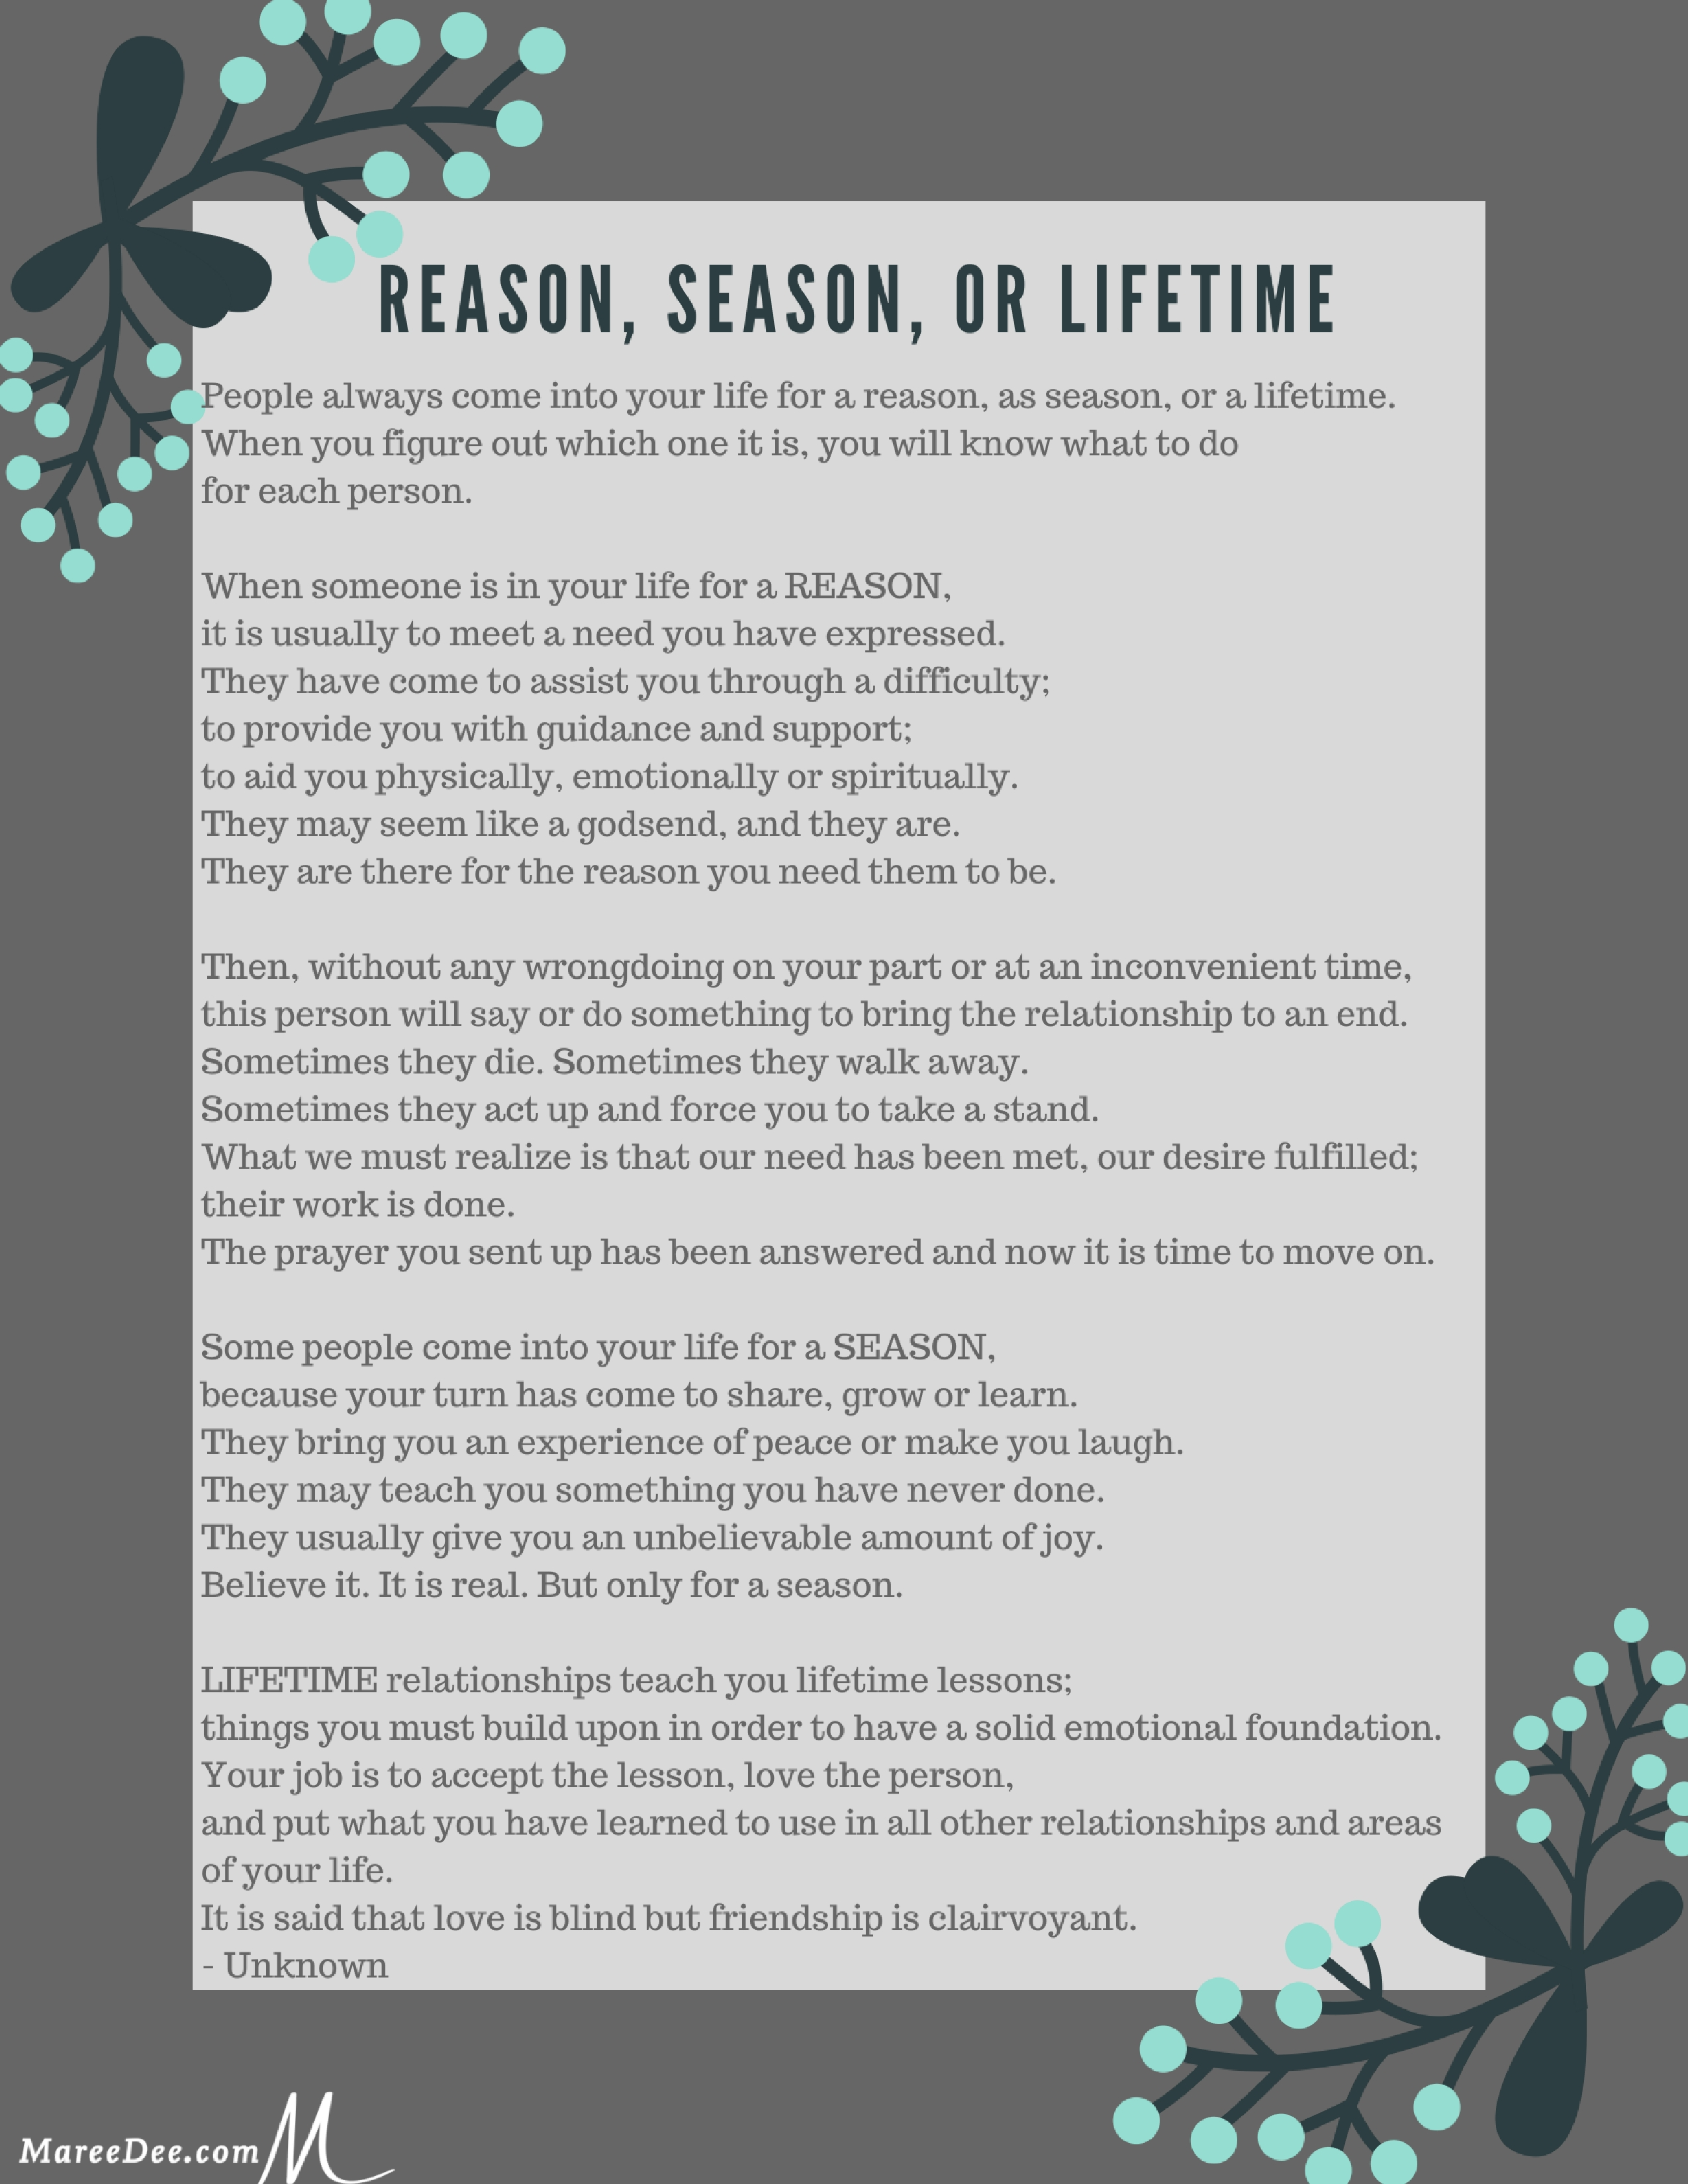 photograph relating to Reason Season Lifetime Poem Printable named Why Would I Enable Move of a Friendship? Embracing the Sudden